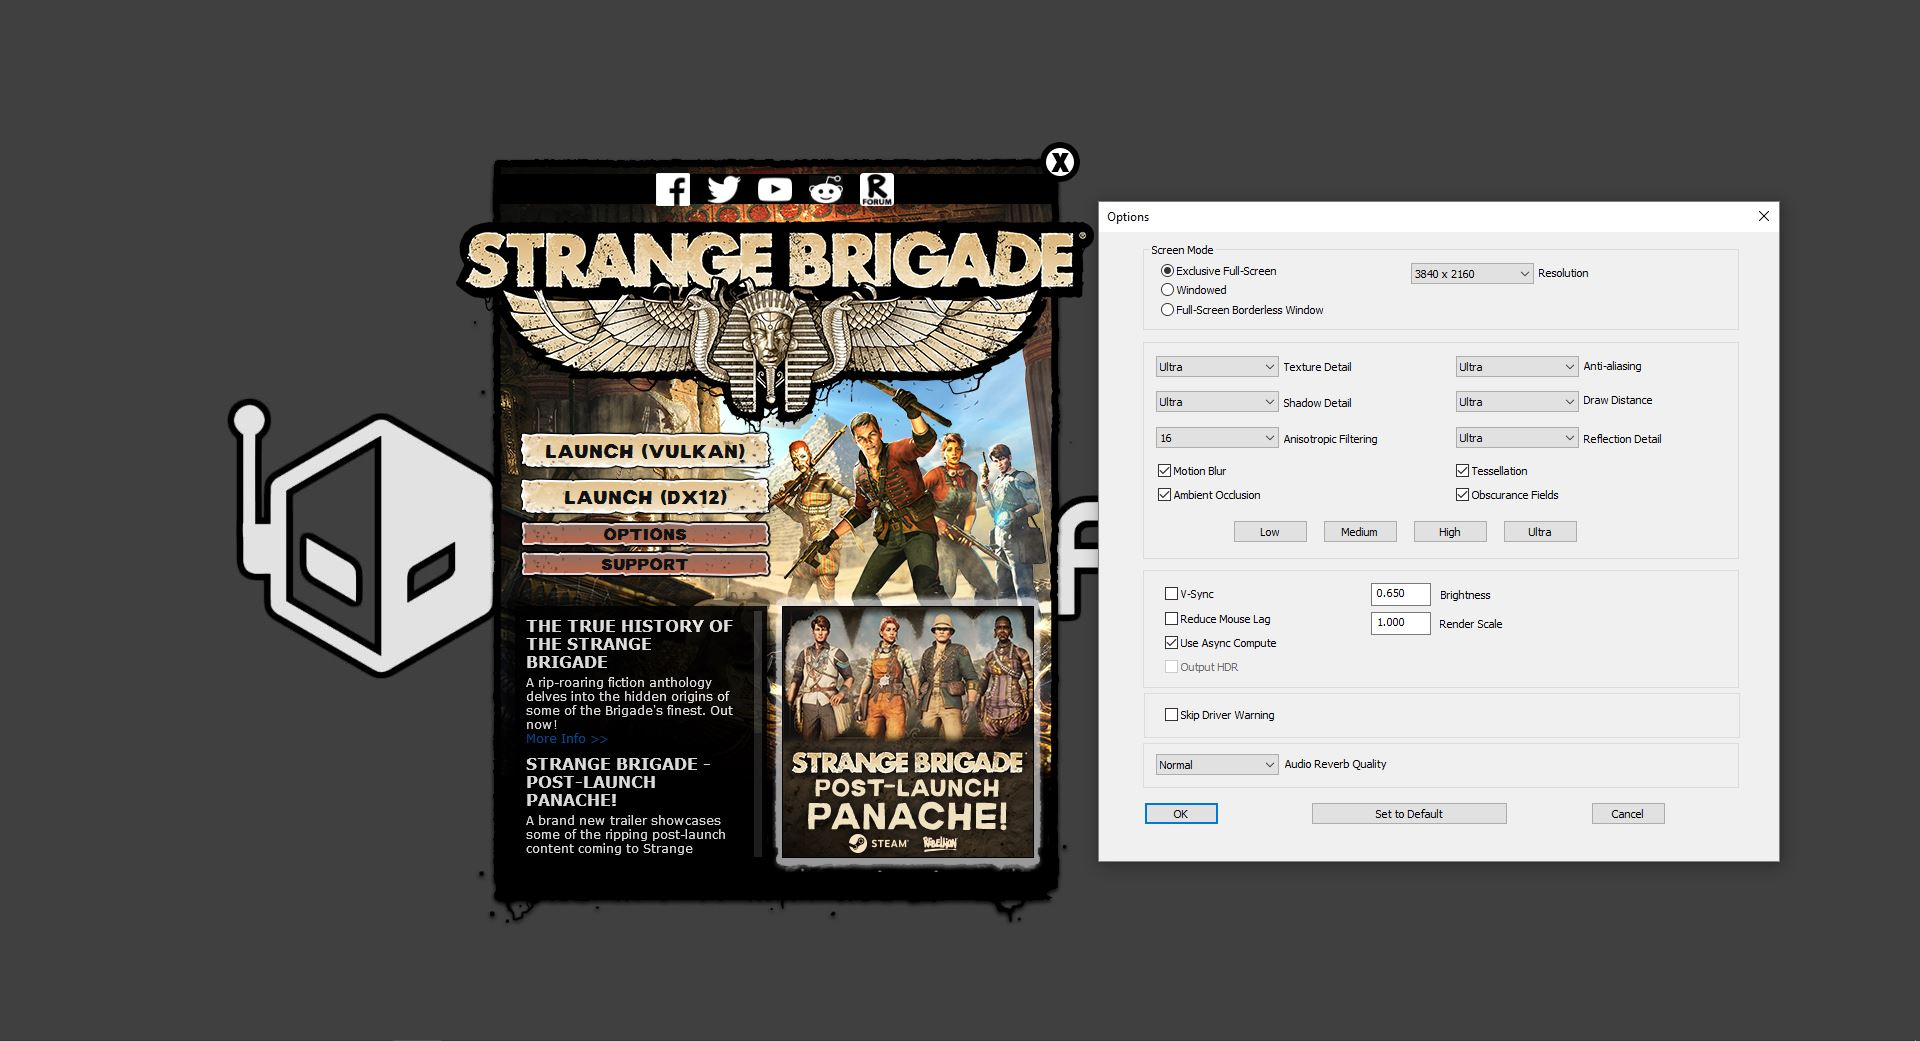 Vulkan Radeon mGPU Performance in Strange Brigade Tested